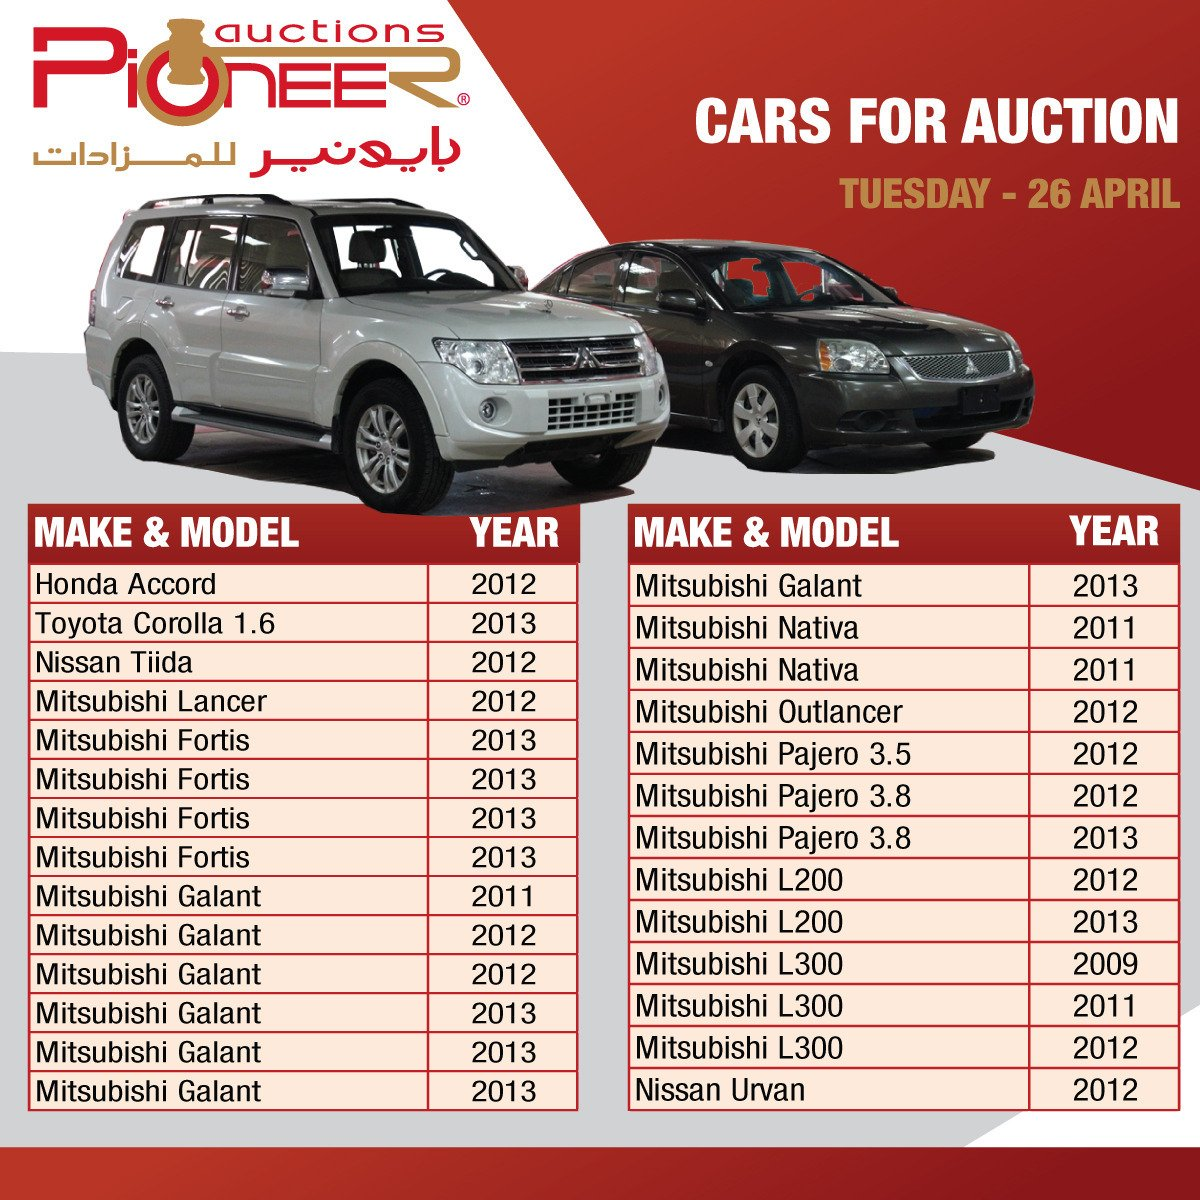 Watch out for these cars in next auction on 26/04/2016  #cars #MyDubai https://t.co/okI8a2p7j5